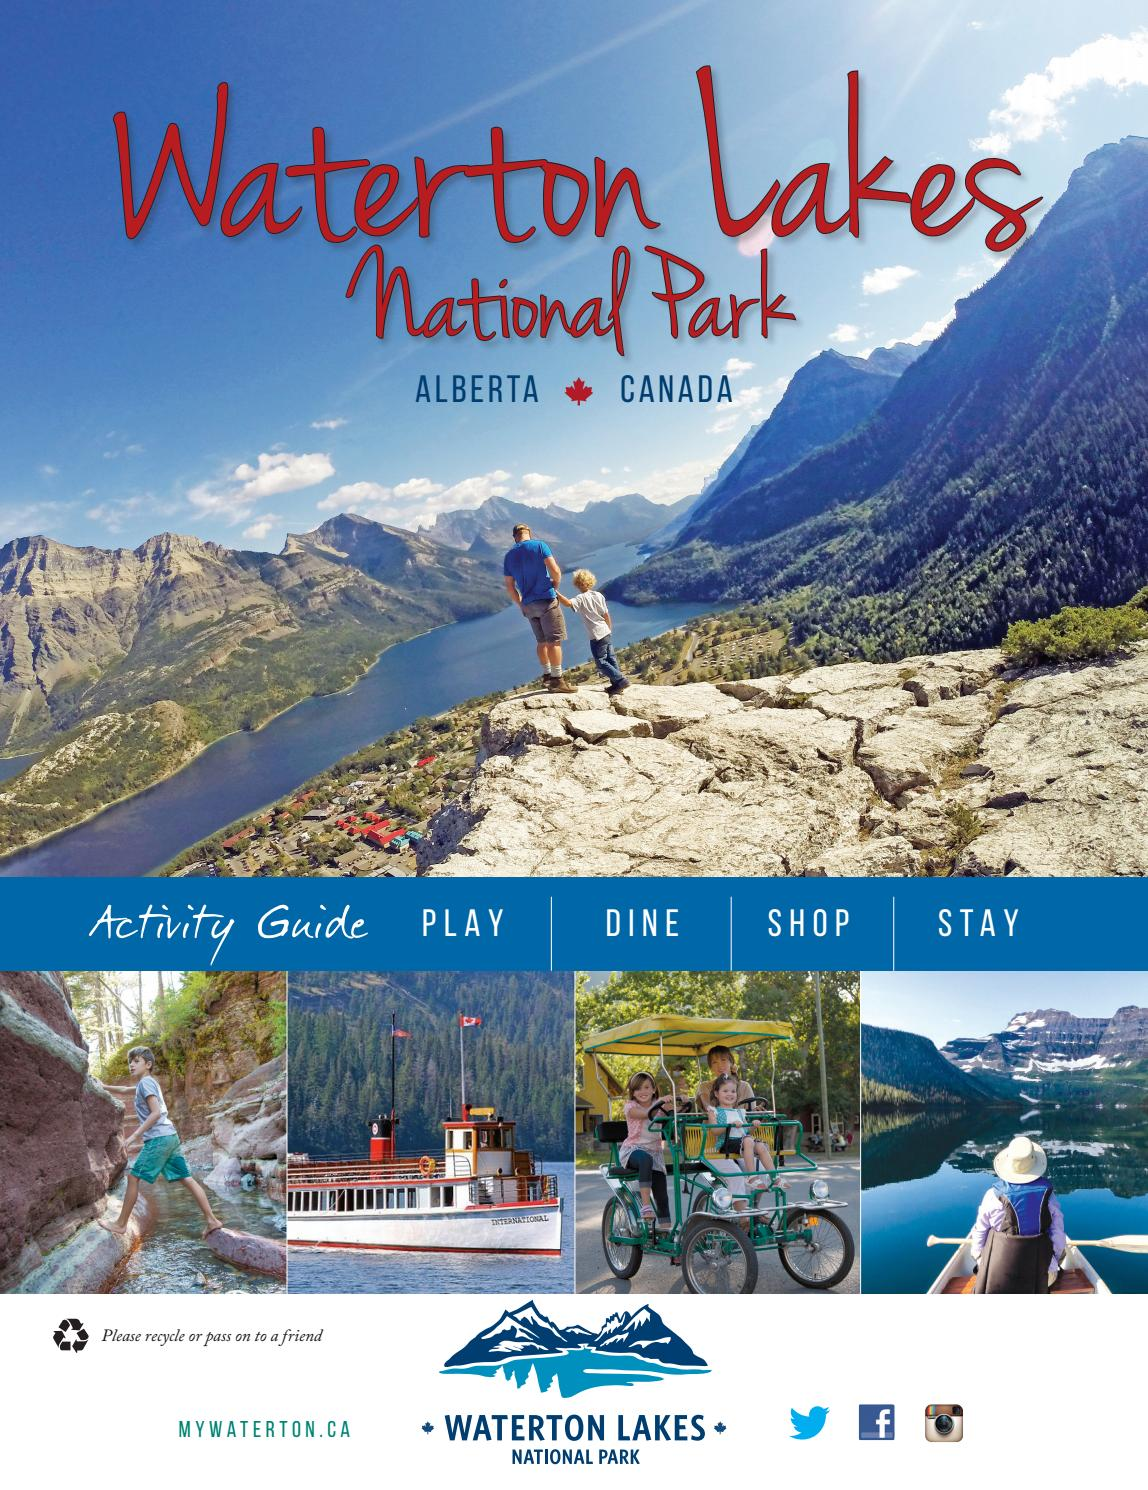 Banff national park vacations 2017 package amp save up to 603 cheap - 2017 Waterton Lakes National Park Activity Guide By Jaci Zalesak Issuu